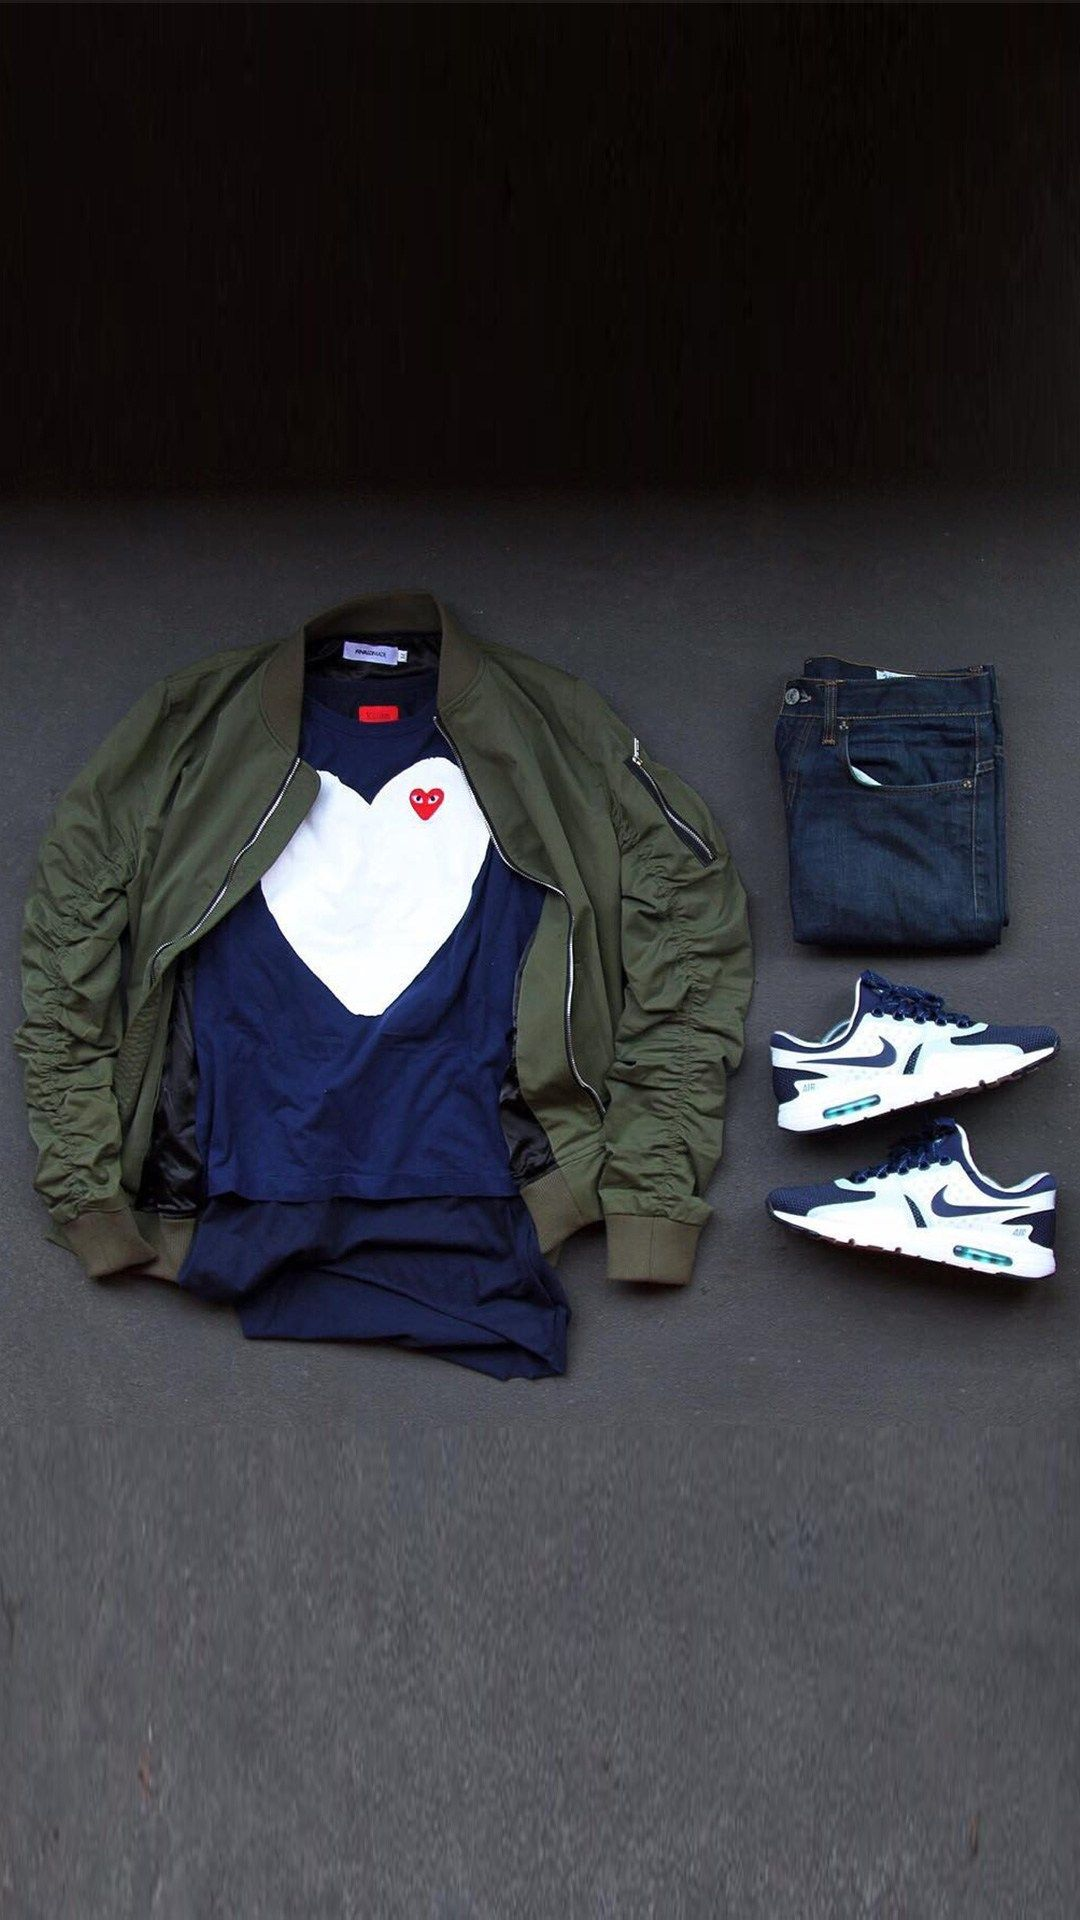 15 Trendy Outfit Grids For Men To Stay In Style #outfitgrid